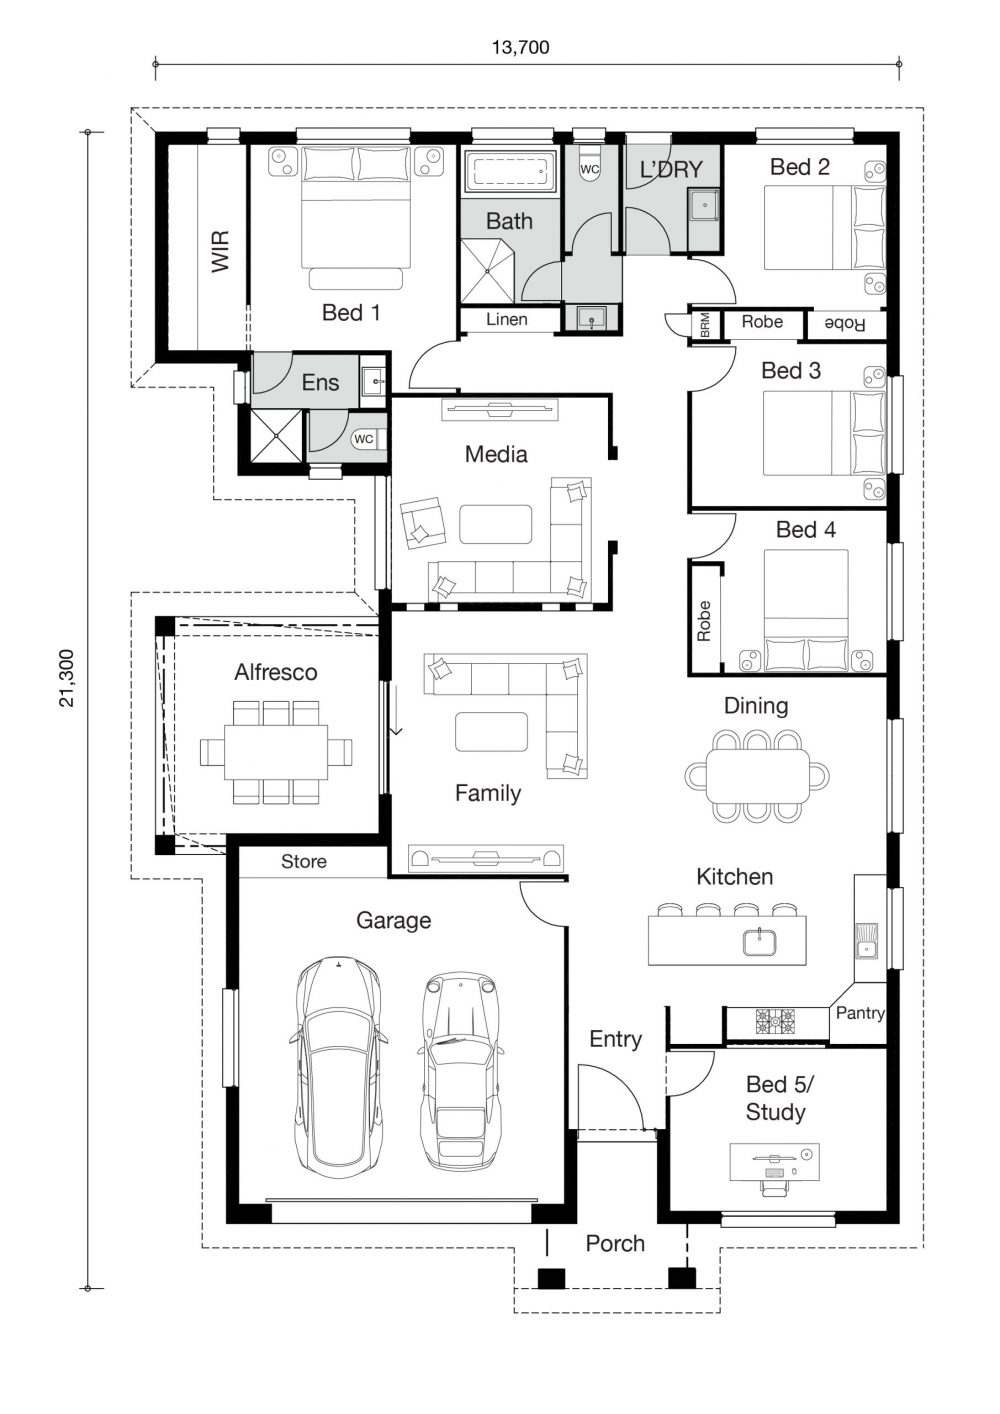 Floor plan for Anjelita home